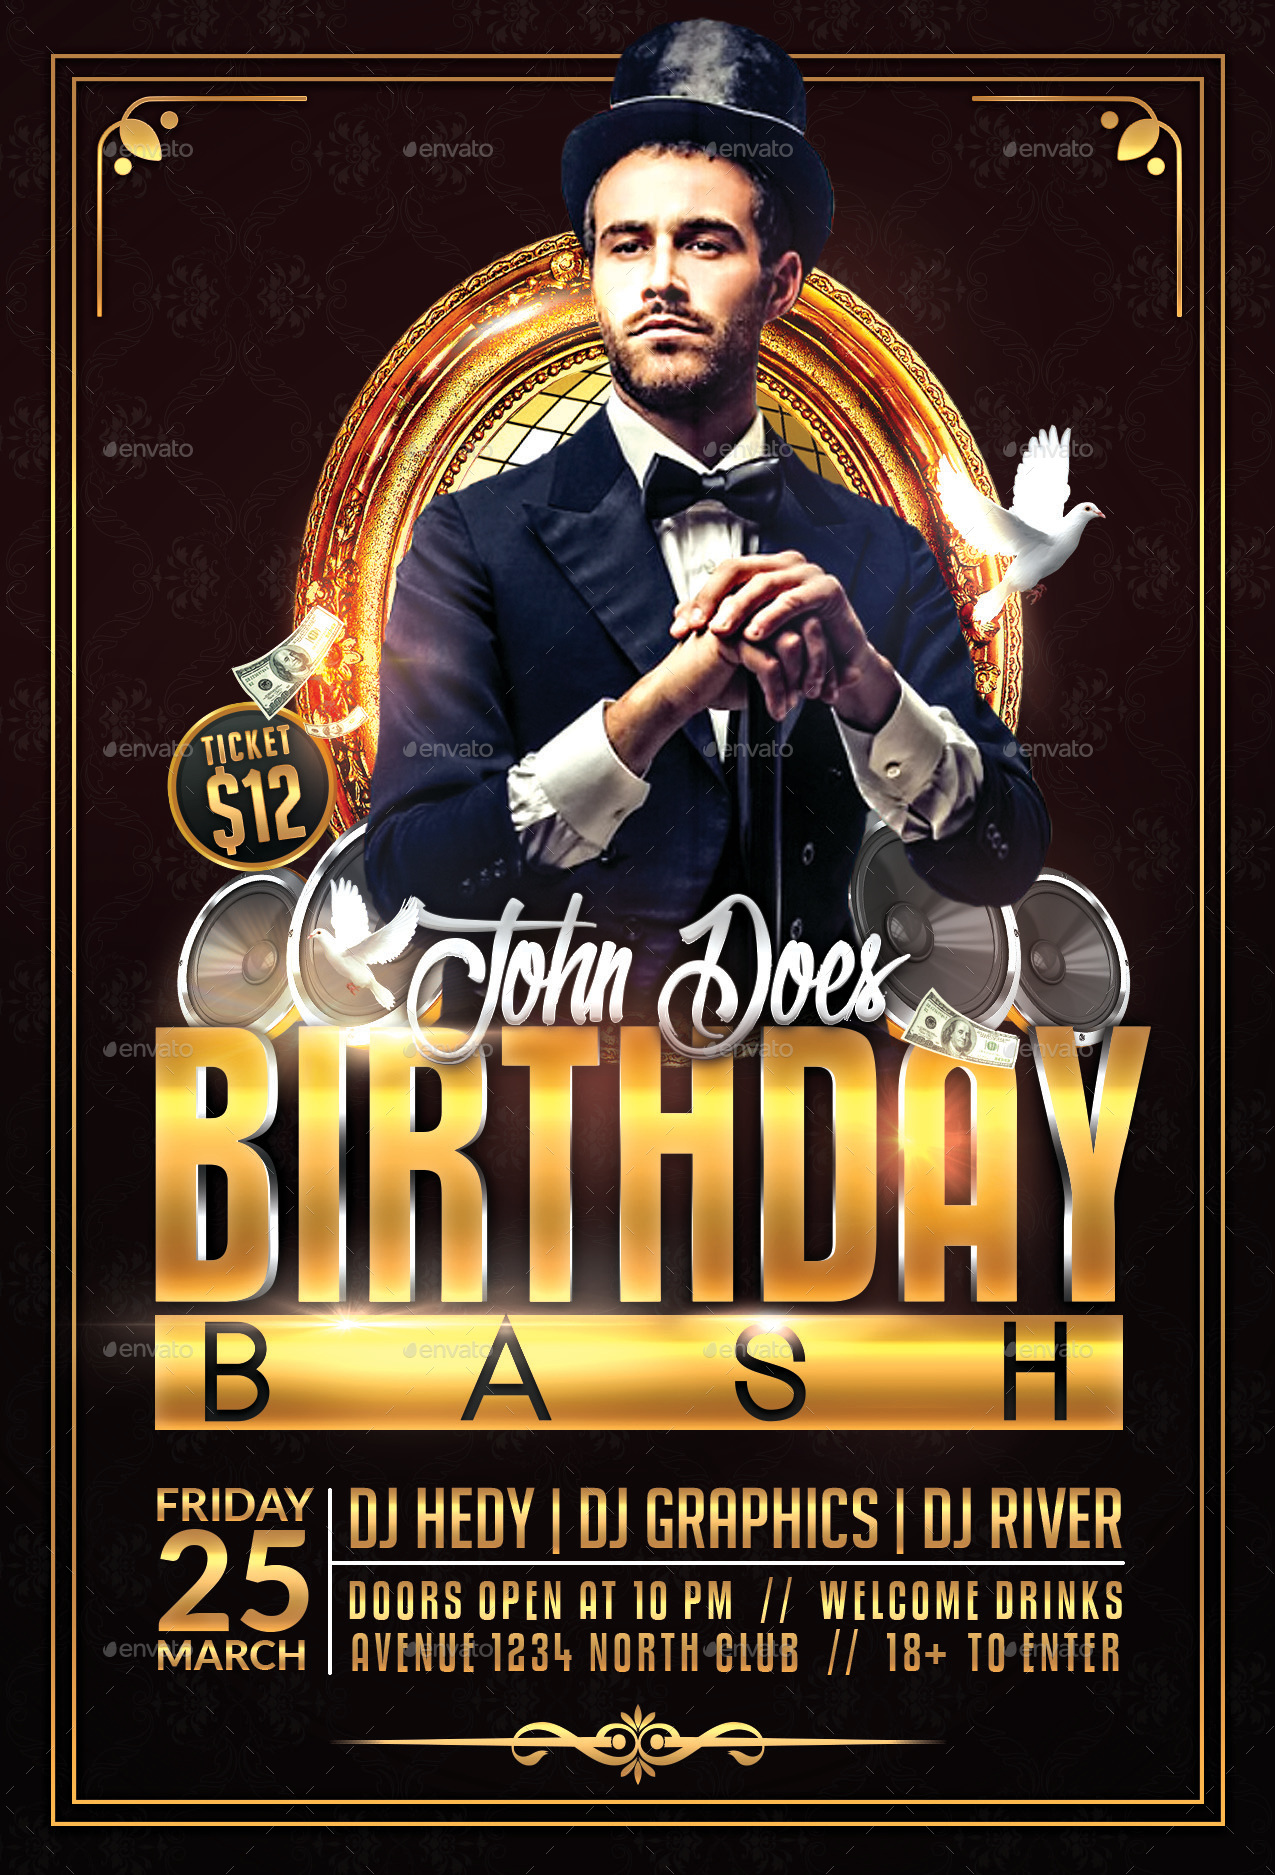 Birthday bash flyer template by hedygraphics graphicriver previewsbday bashg maxwellsz